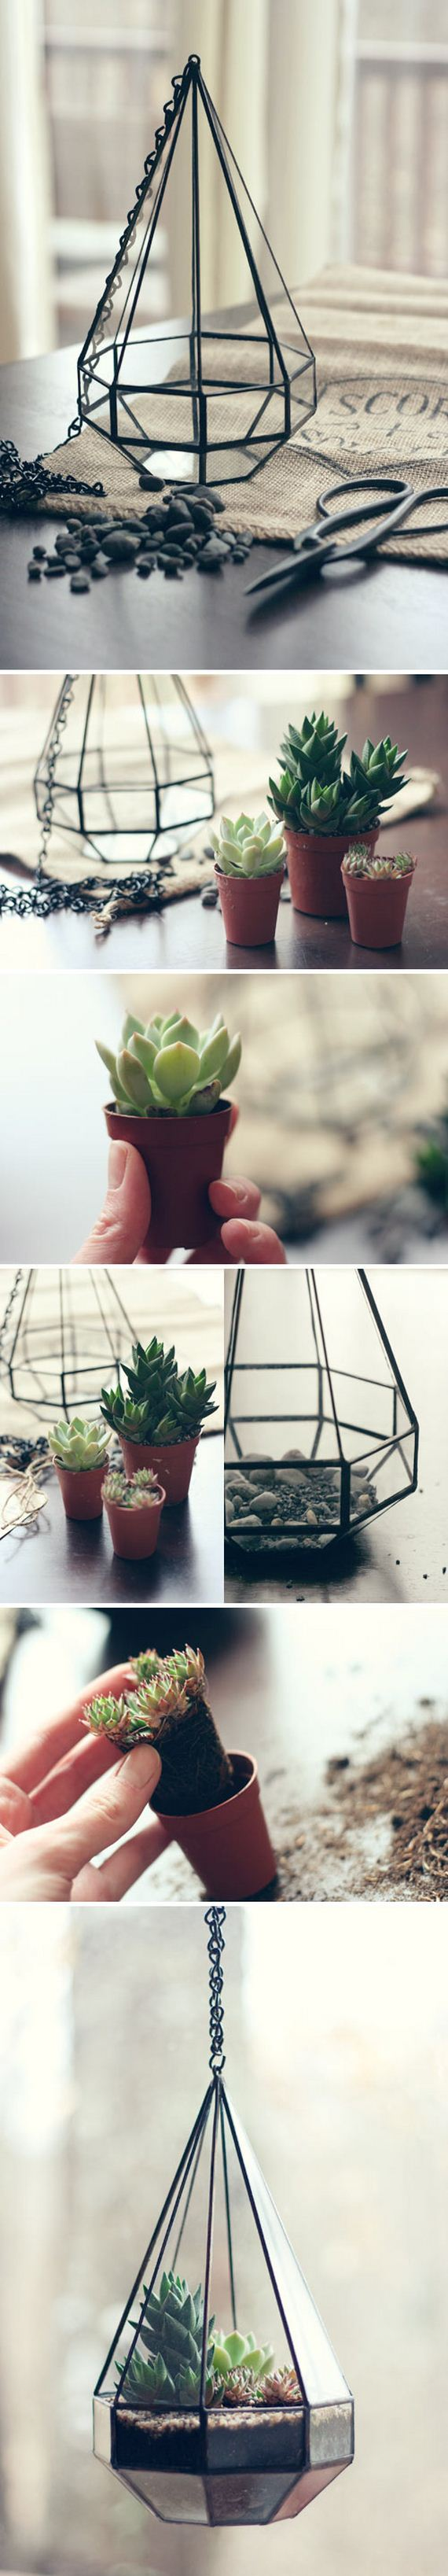 easy-ideas-for-adorable-diy